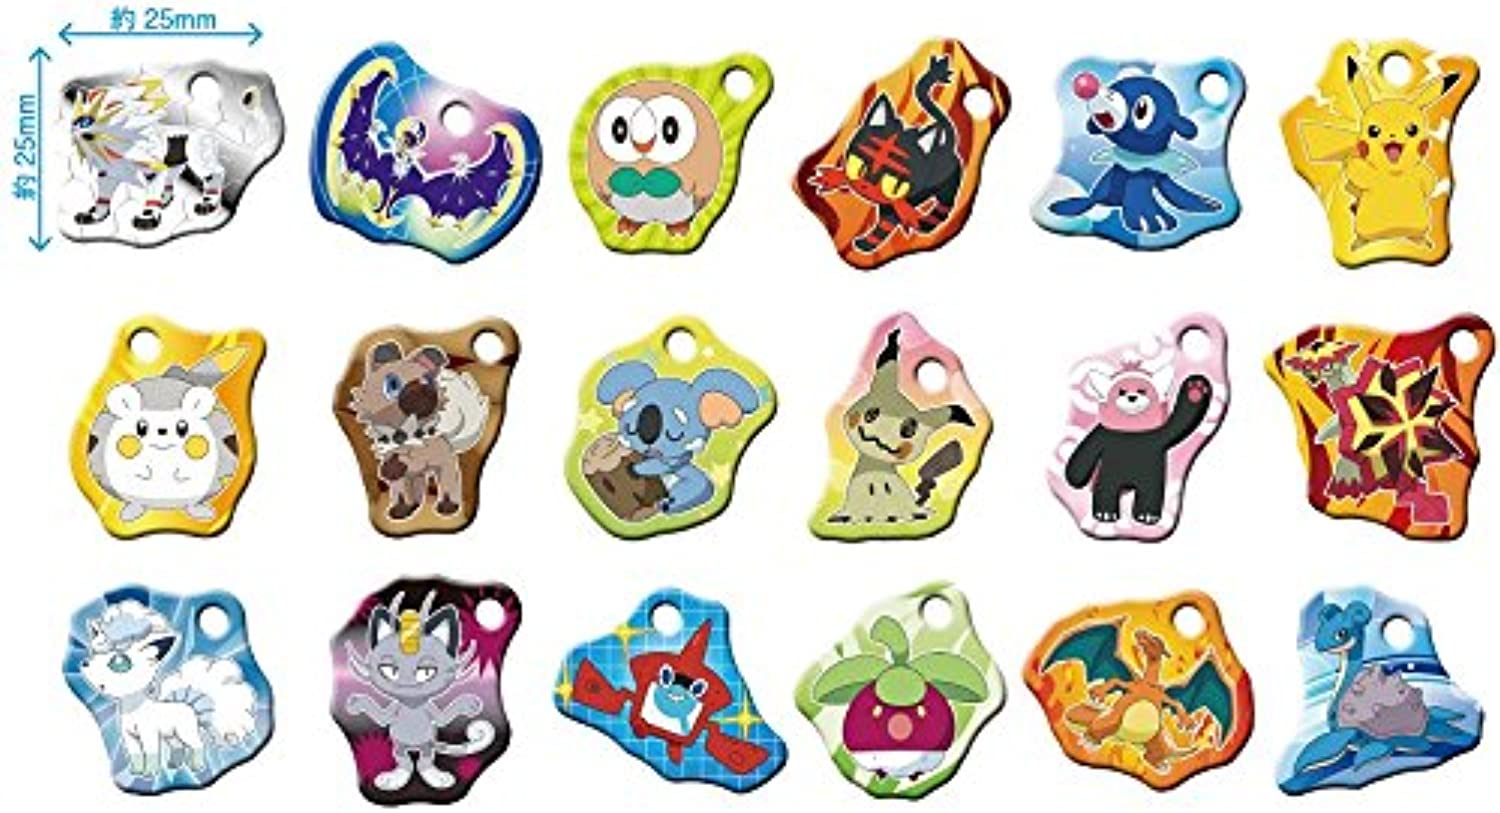 Pocket Monster Sun & moon are BOX products 1 BOX = 18 pieces, all 18 types